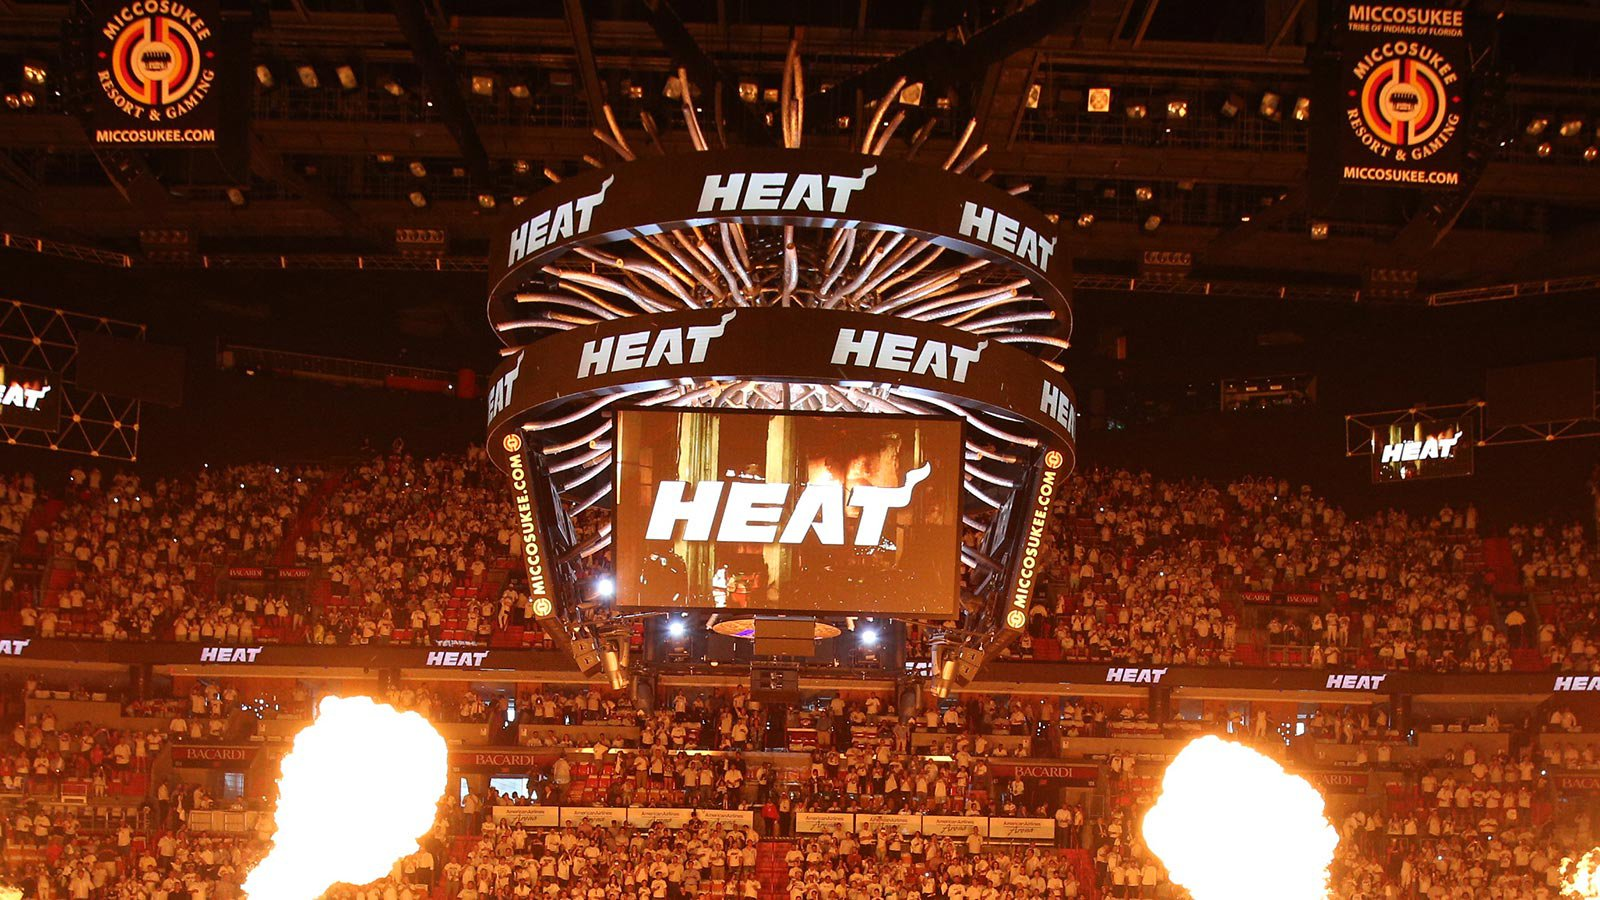 Miami Heat basketball arena with packed crowd, video screens, and fire effects. (background)